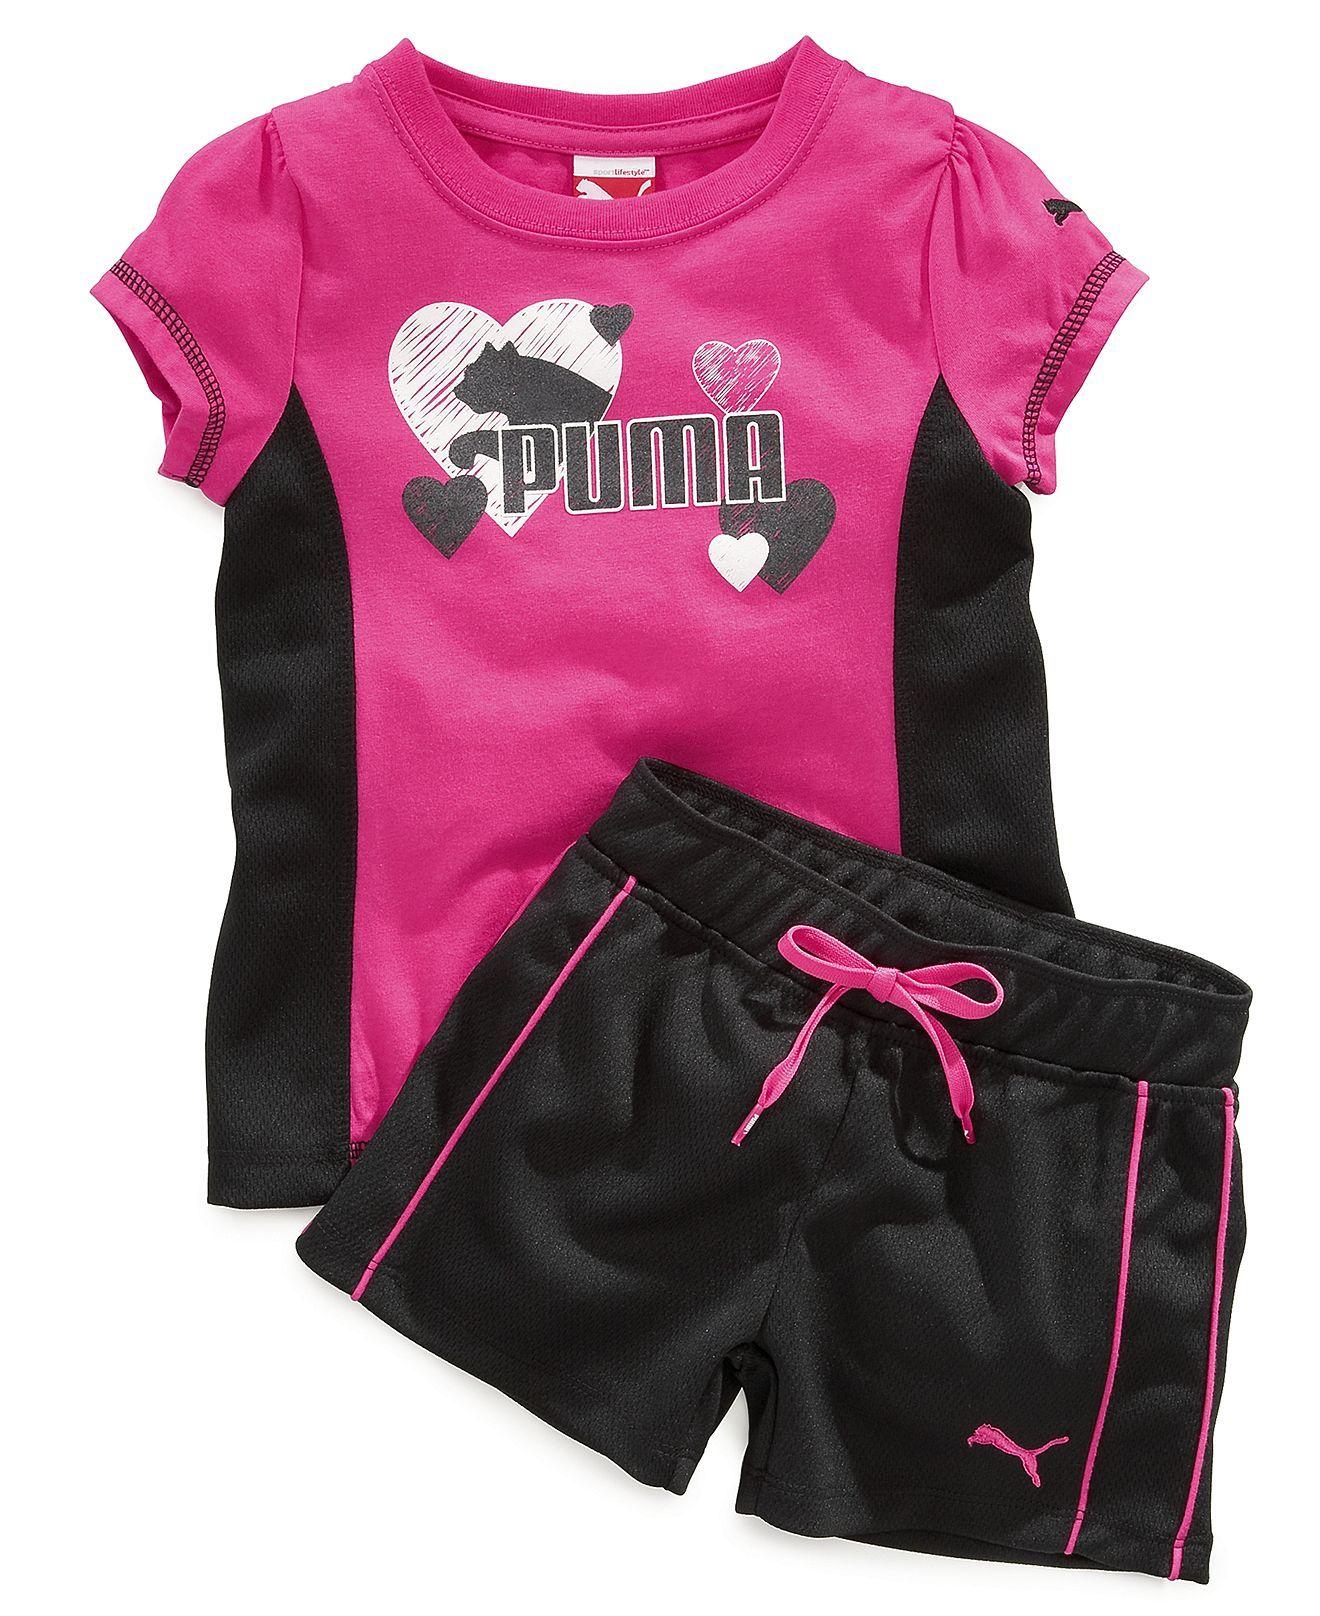 bb4f5ec76 Puma Baby Set